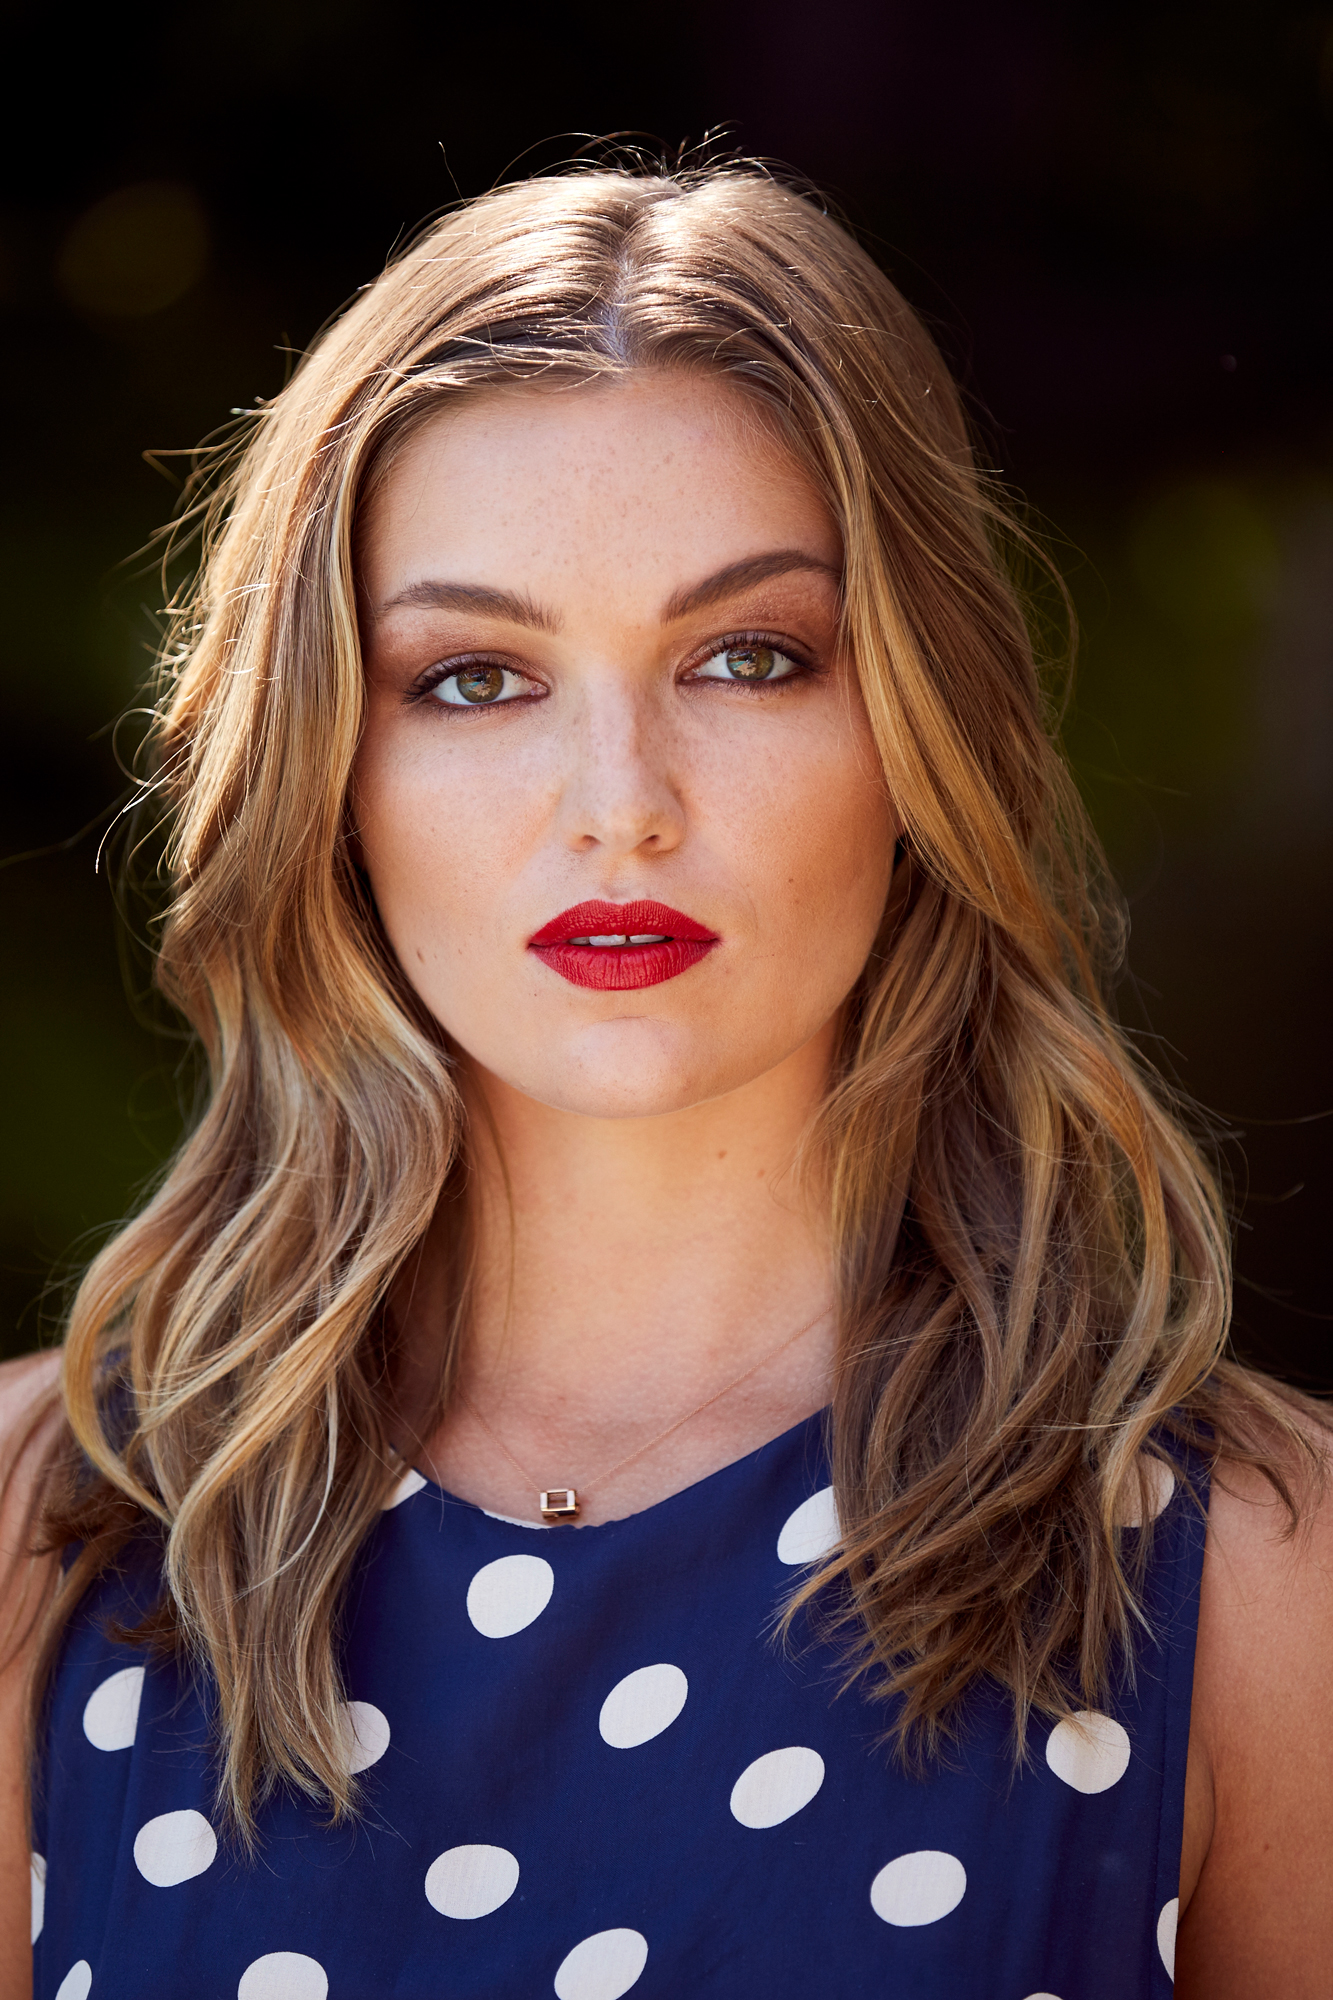 Photos Lili Simmons nude photos 2019